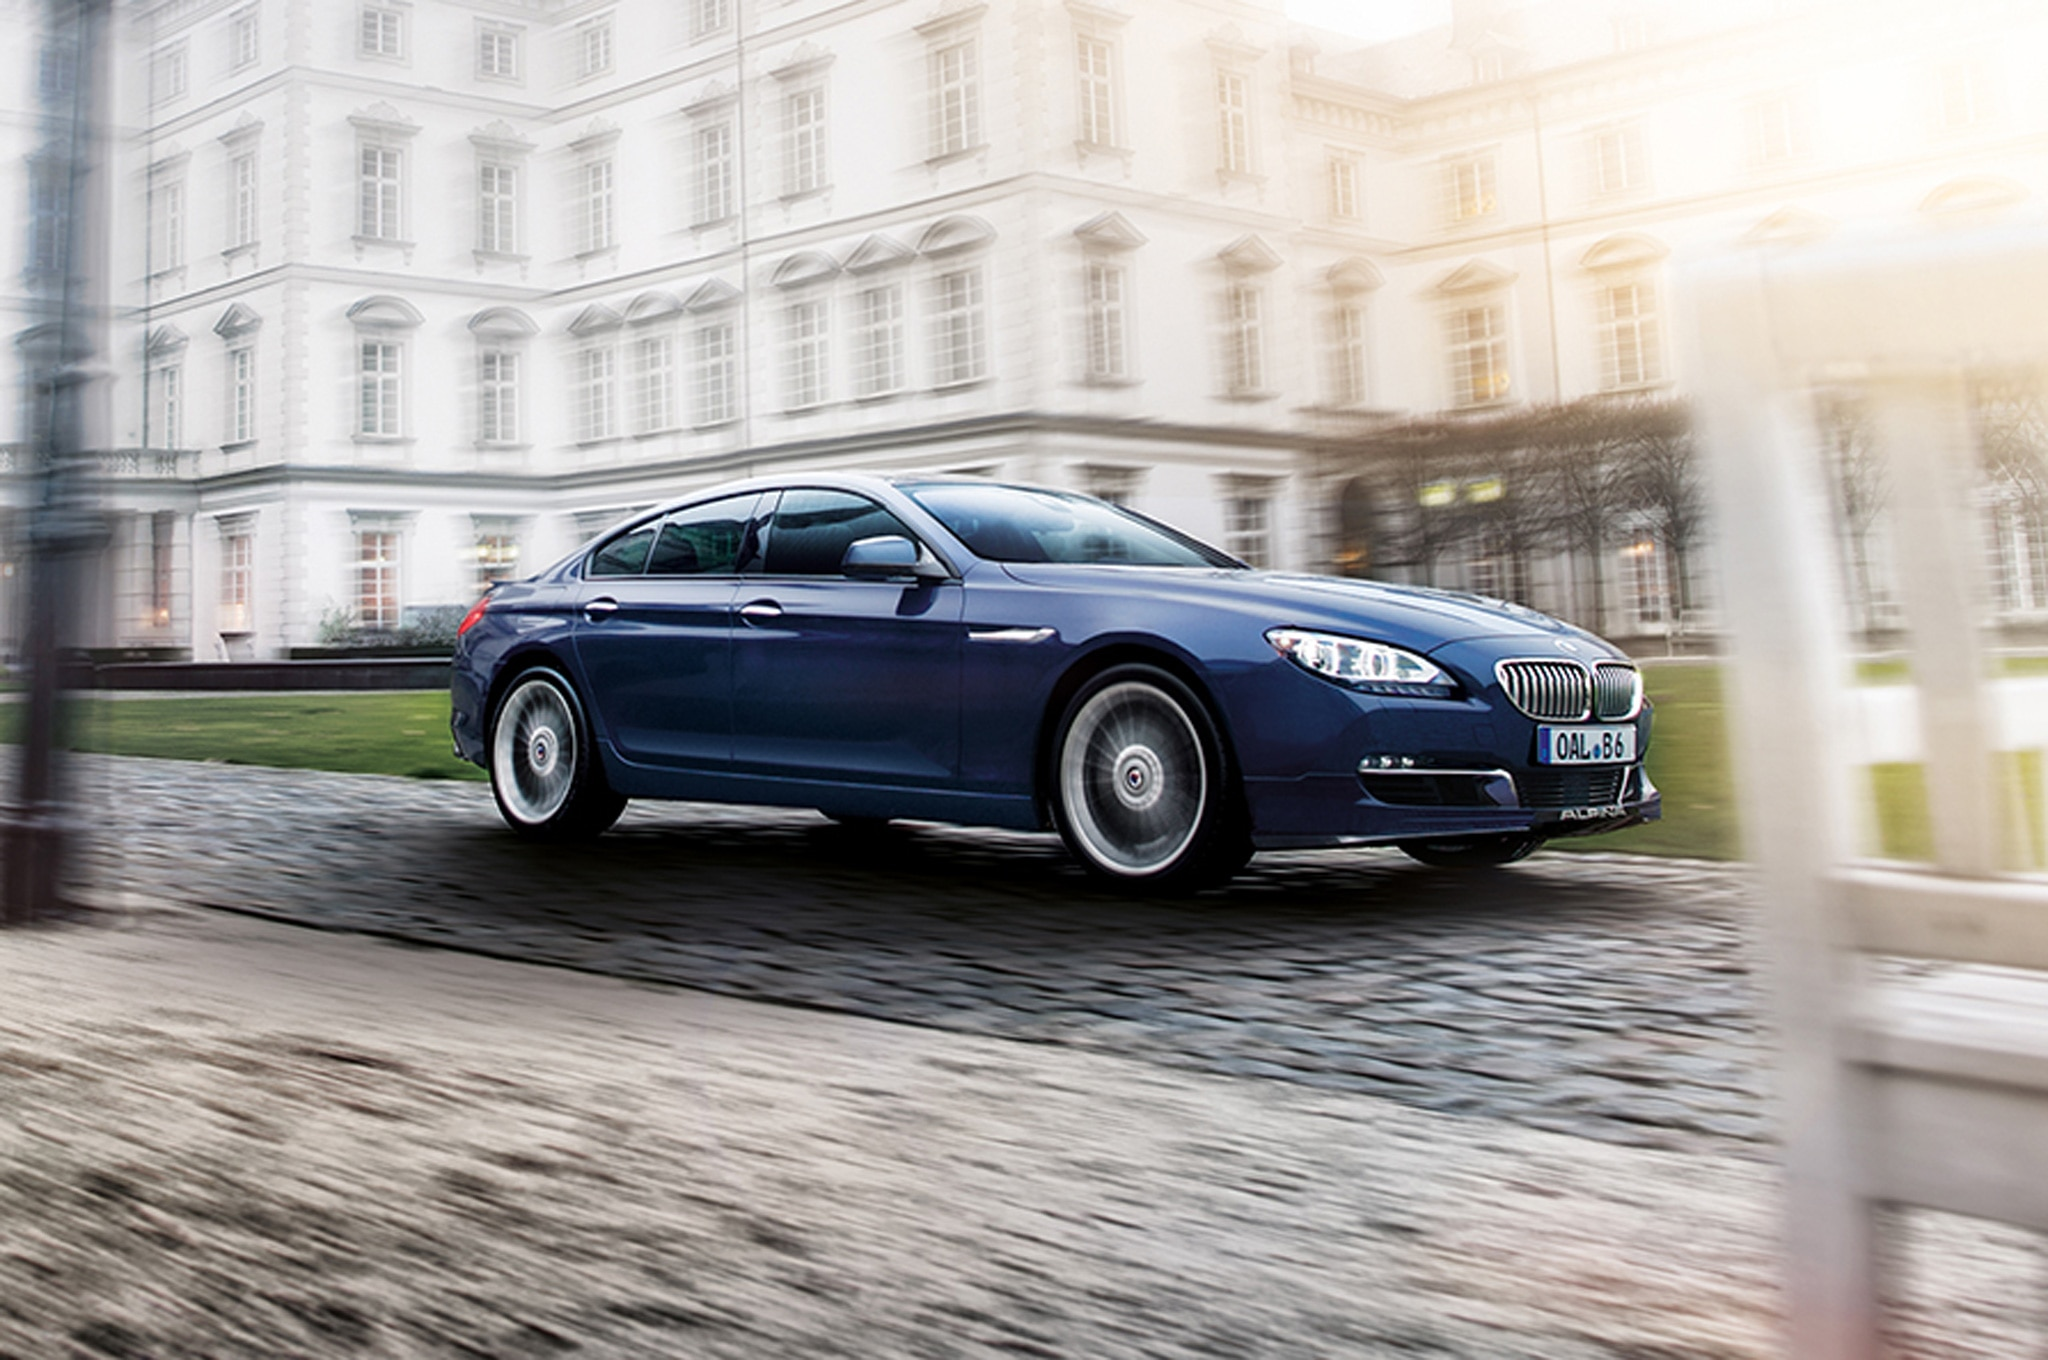 2015 BMW Alpina B6 xDrive Gran Coupe Review - Automobile Magazine